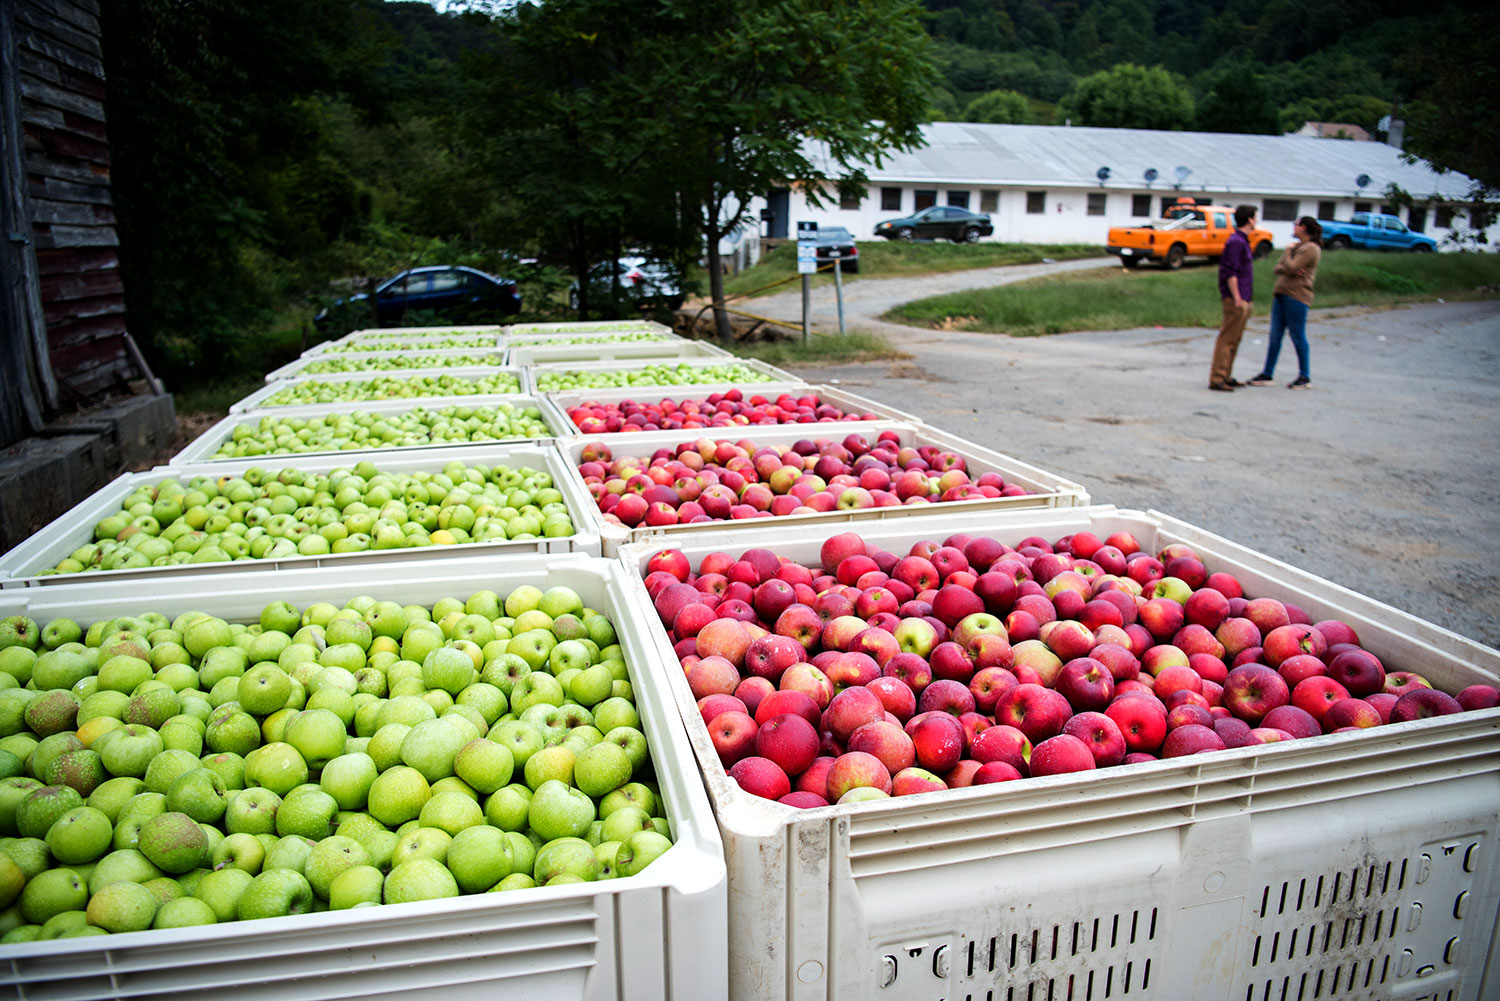 The apple harvest season annually brings scores of seasonal agricultural workers to Central Virginia. (Photo by Jesús Pino)